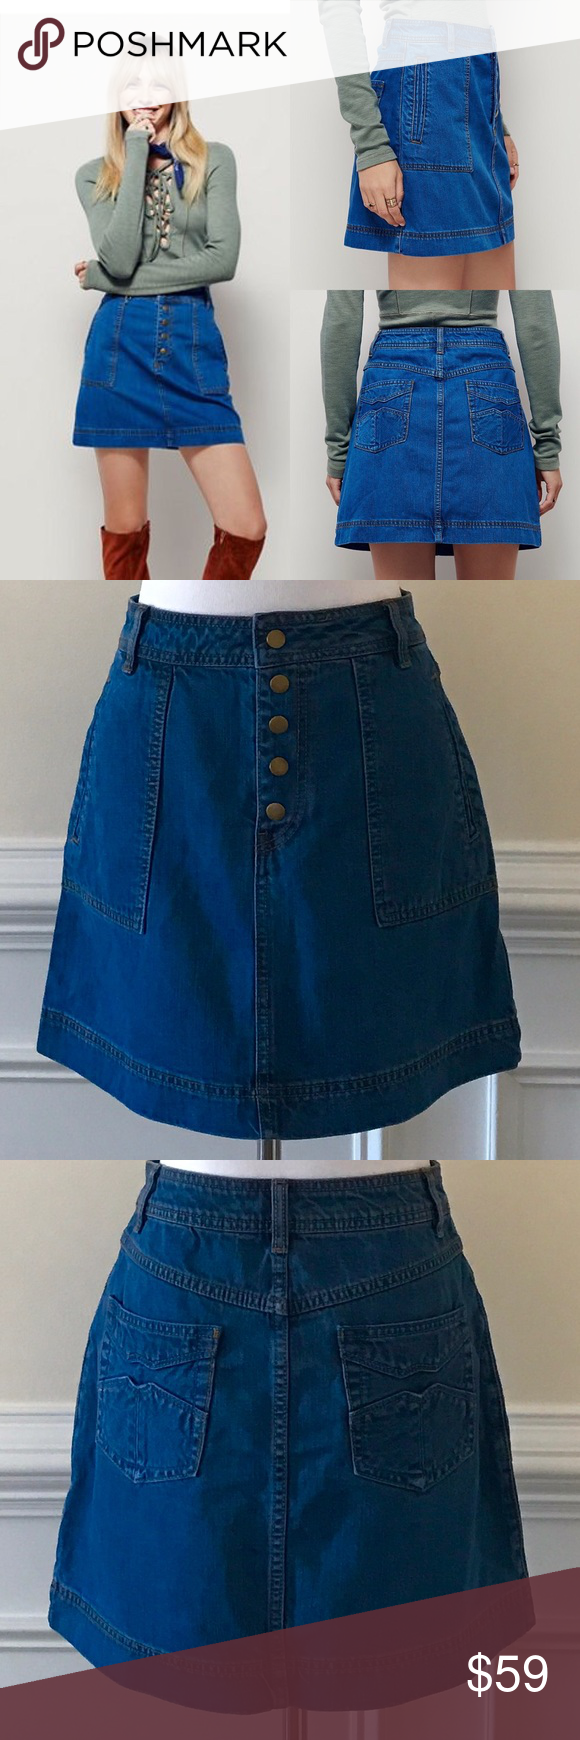 New Free People Wildfire Denim Mini Skirt Size 26 Inspired by decades past, this denim mini skirt features exposed button closures down the front and seam detailing. Hip slip pockets and traditional back pockets with a design.  Tag cut in store to prevent returns.  New without tags.